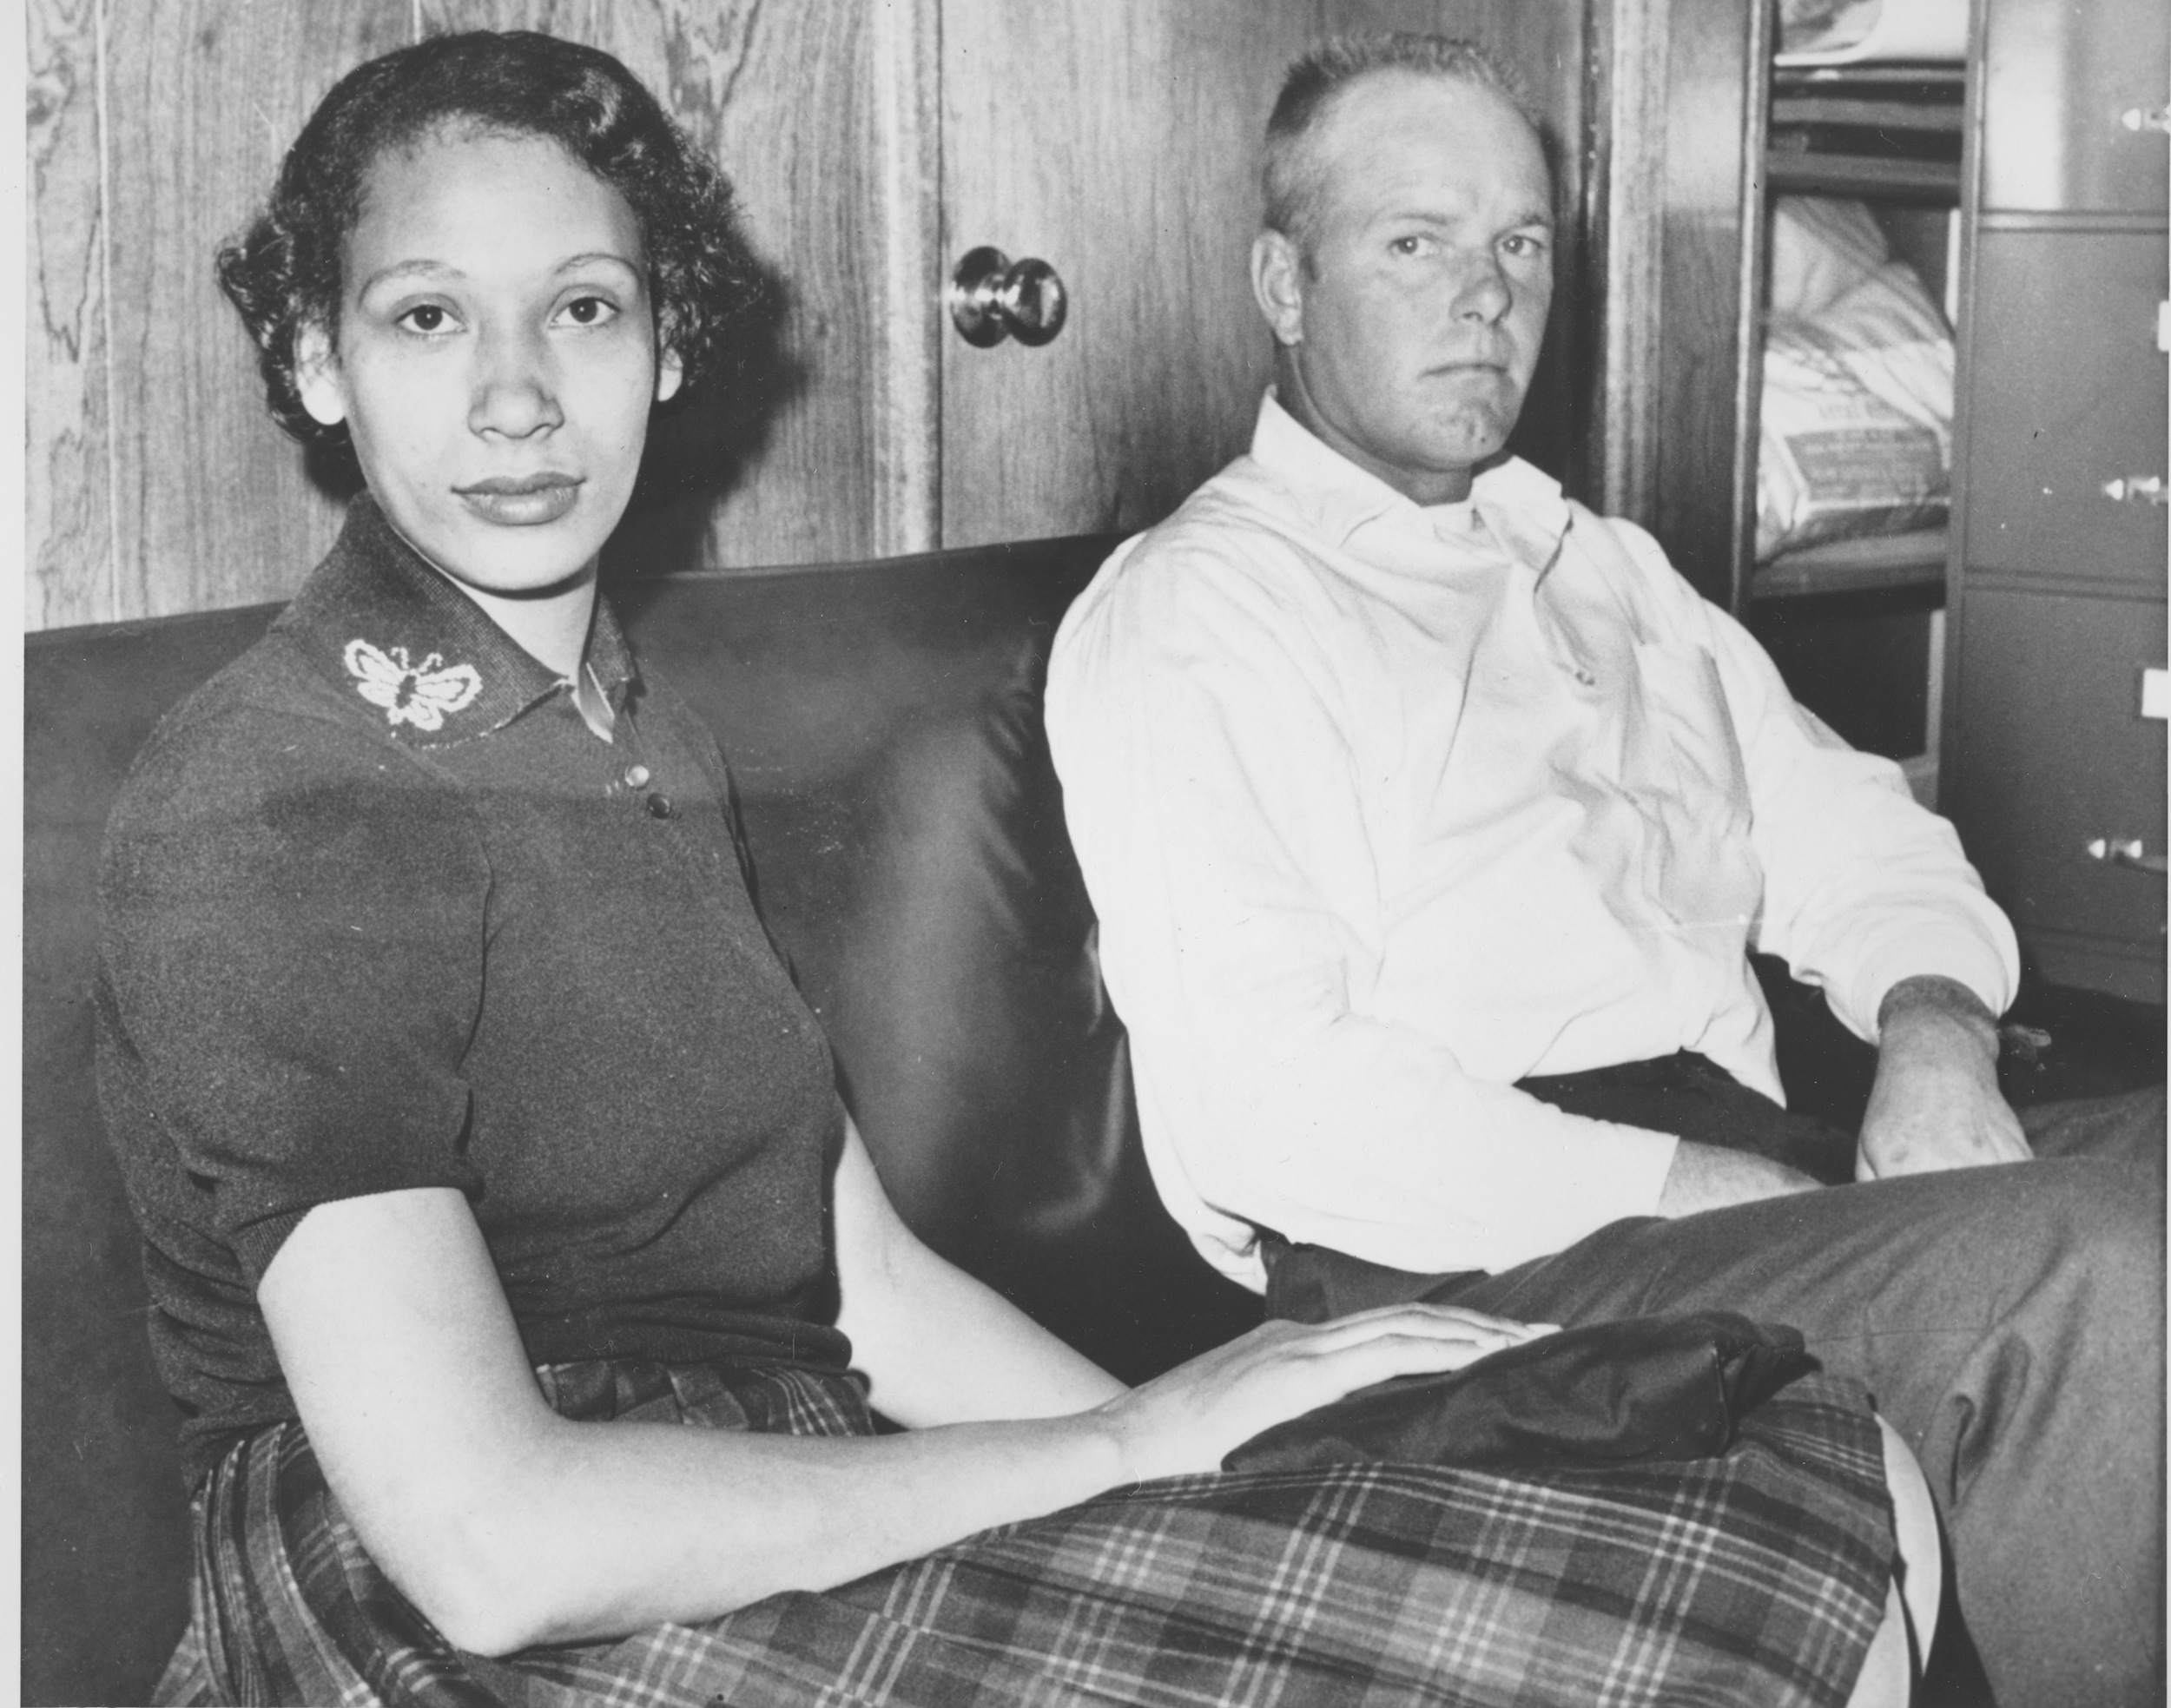 The law and interracial marriages